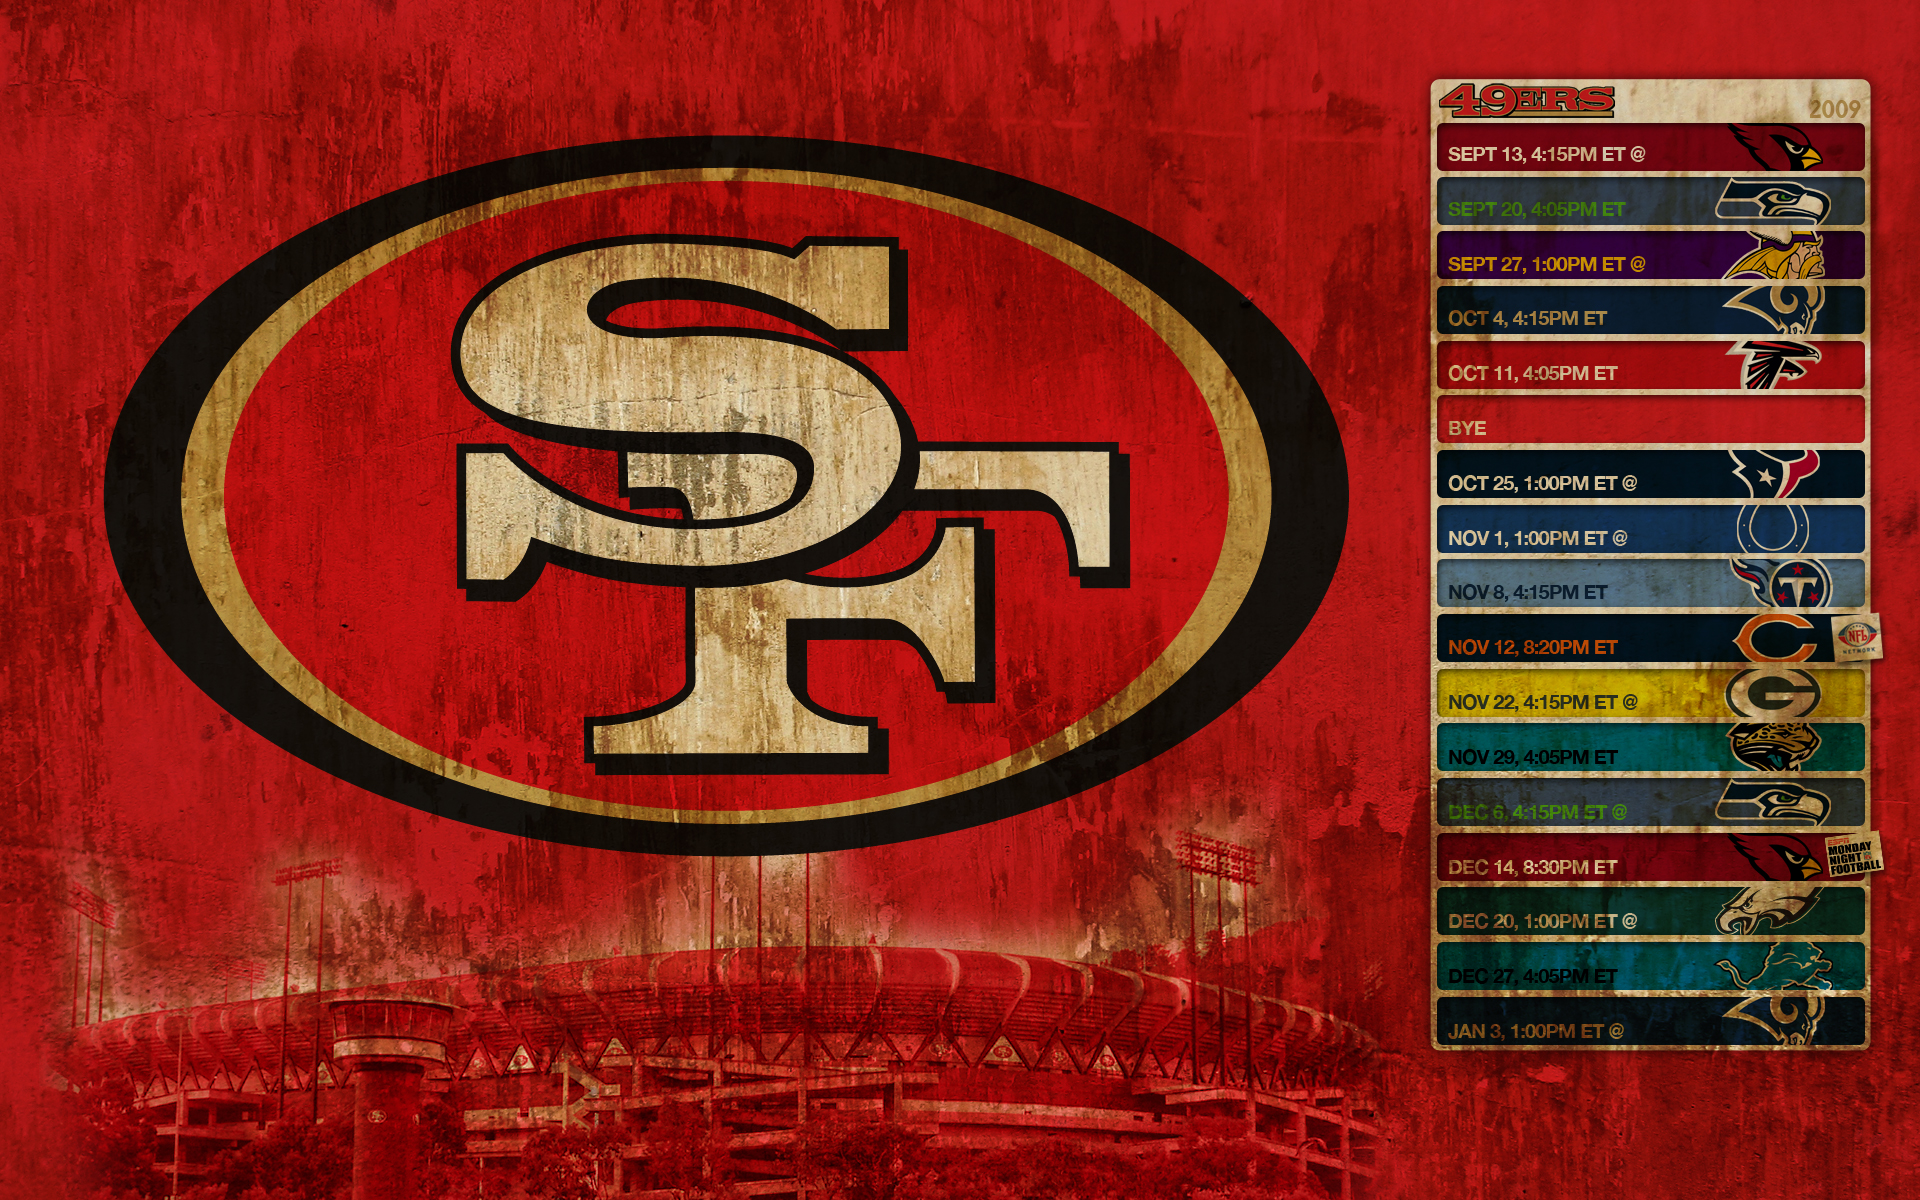 Misc wallpaper set 8 sports nfl megapack 1 awesome - 2015 49ers schedule wallpaper ...